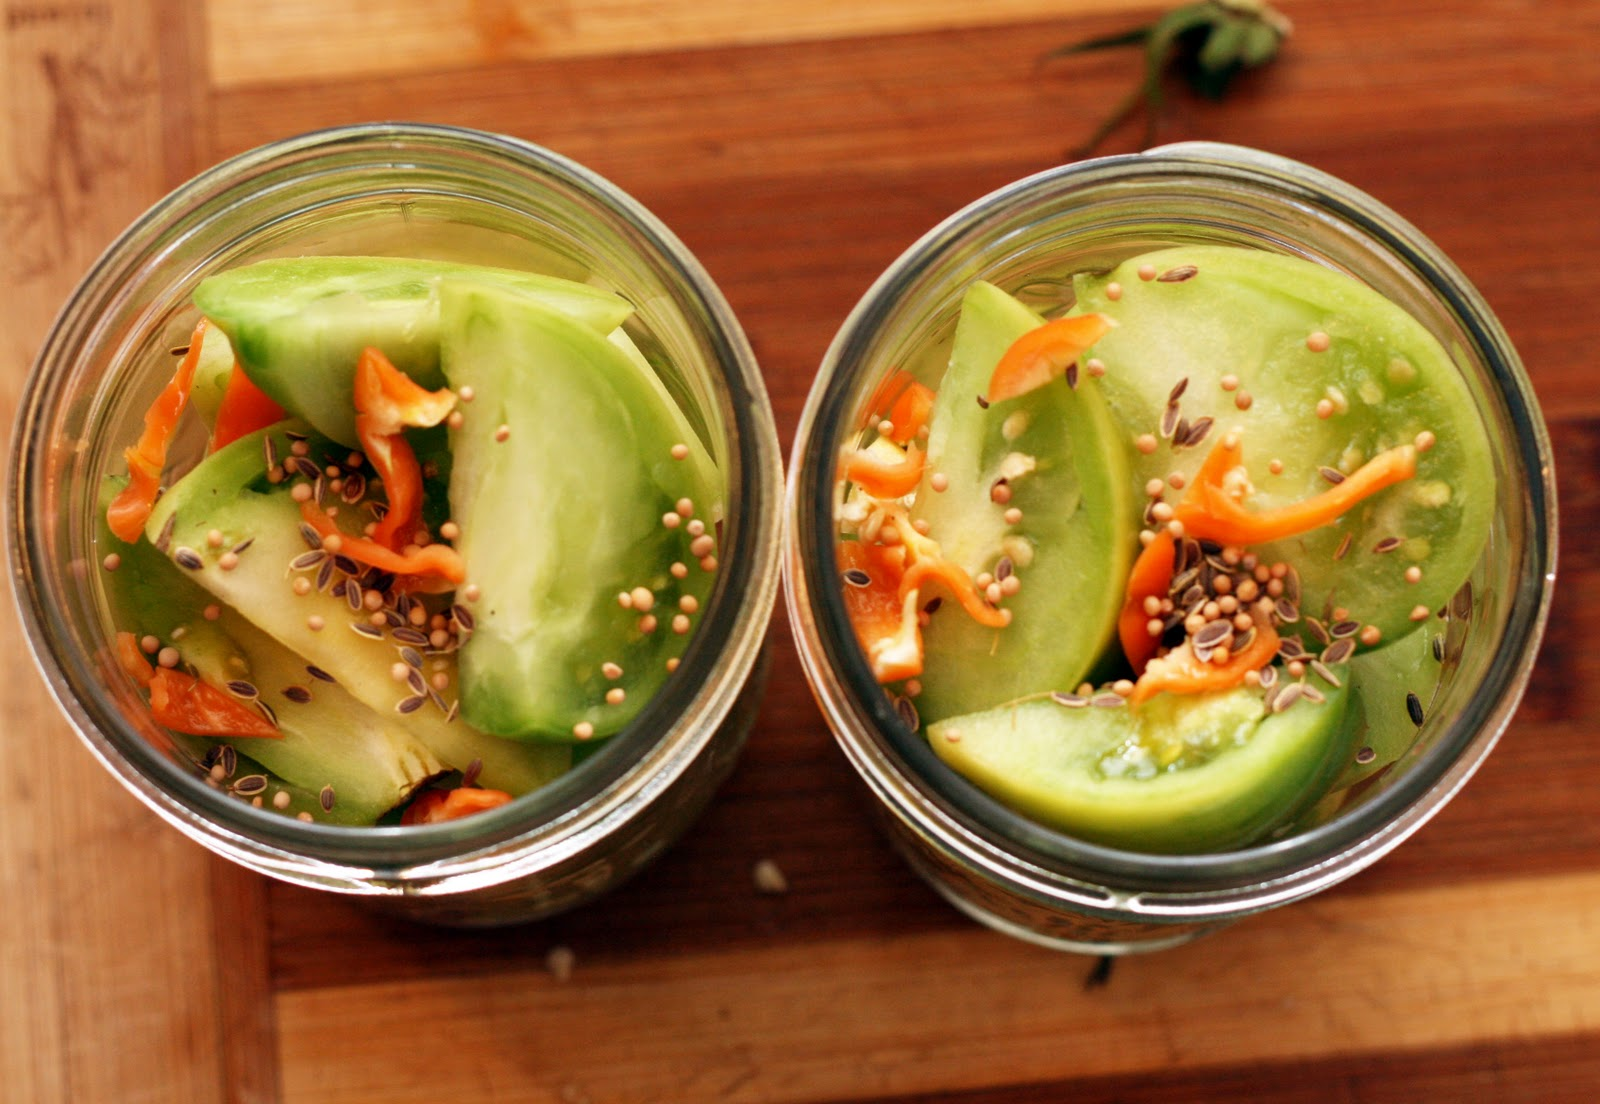 Recipes by Rachel Rappaport: Hot Pickled Green Tomatoes